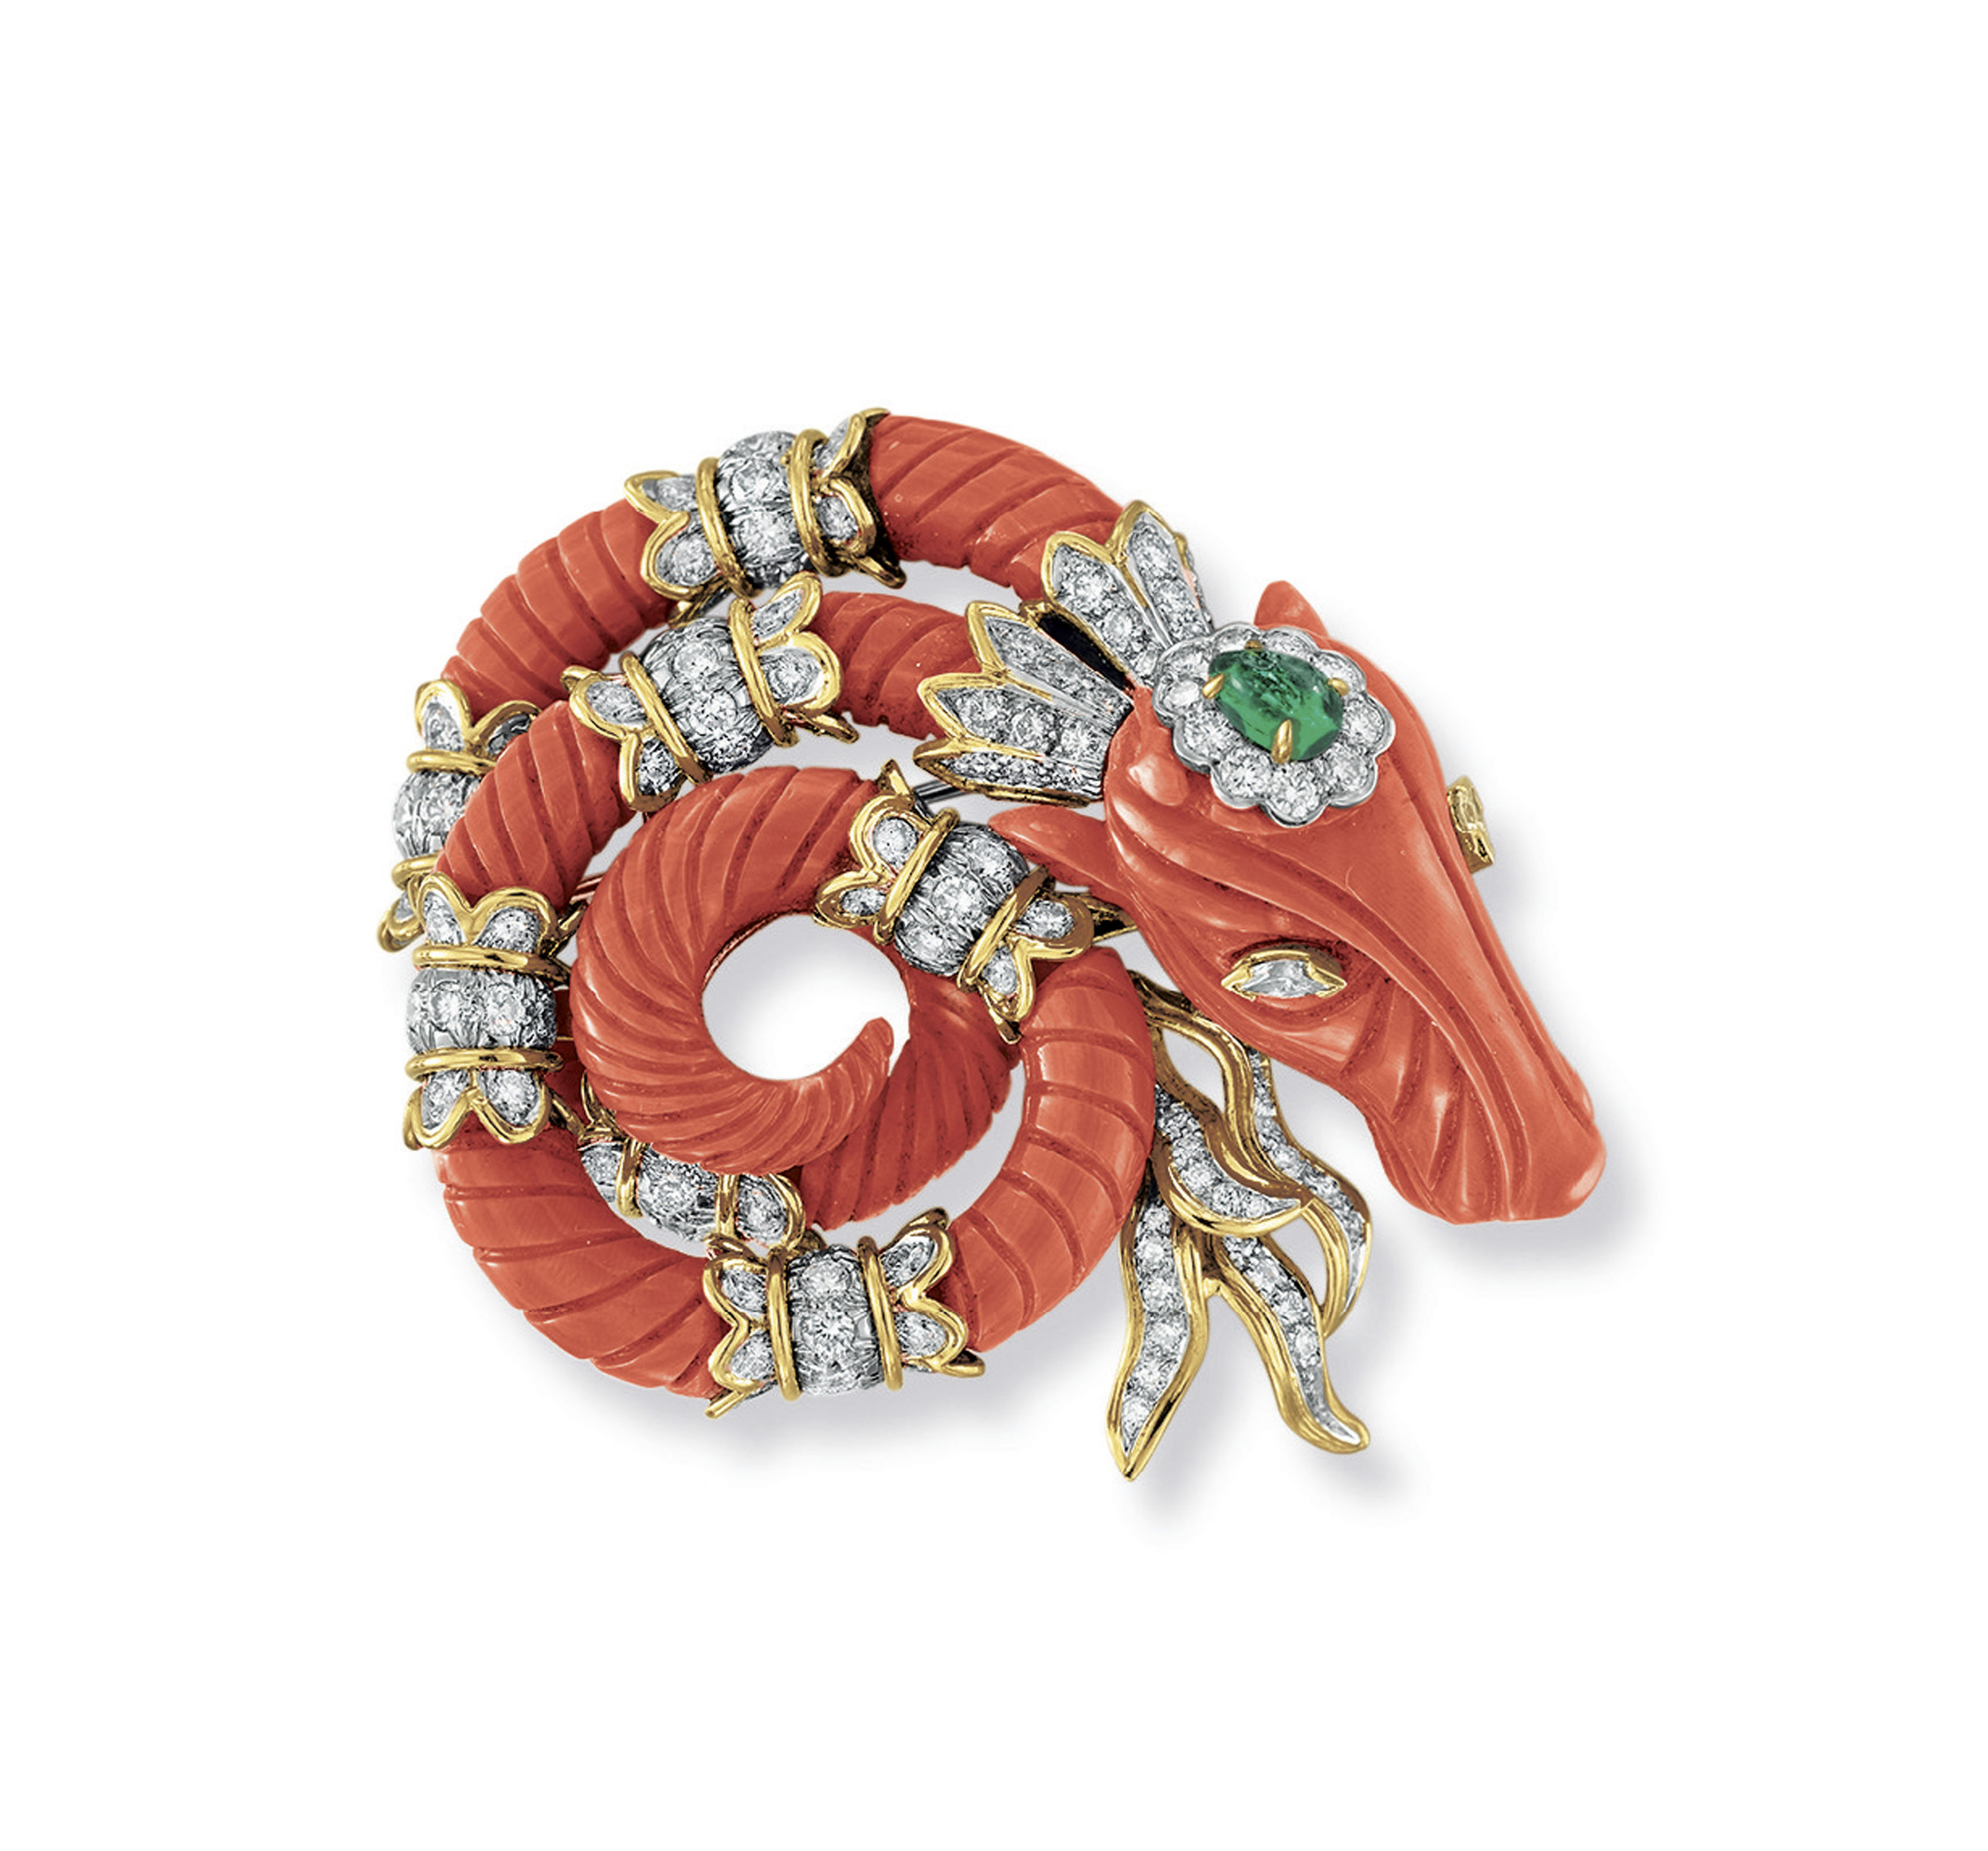 ~A CORAL, DIAMOND AND EMERALD BROOCH, BY DAVID WEBB